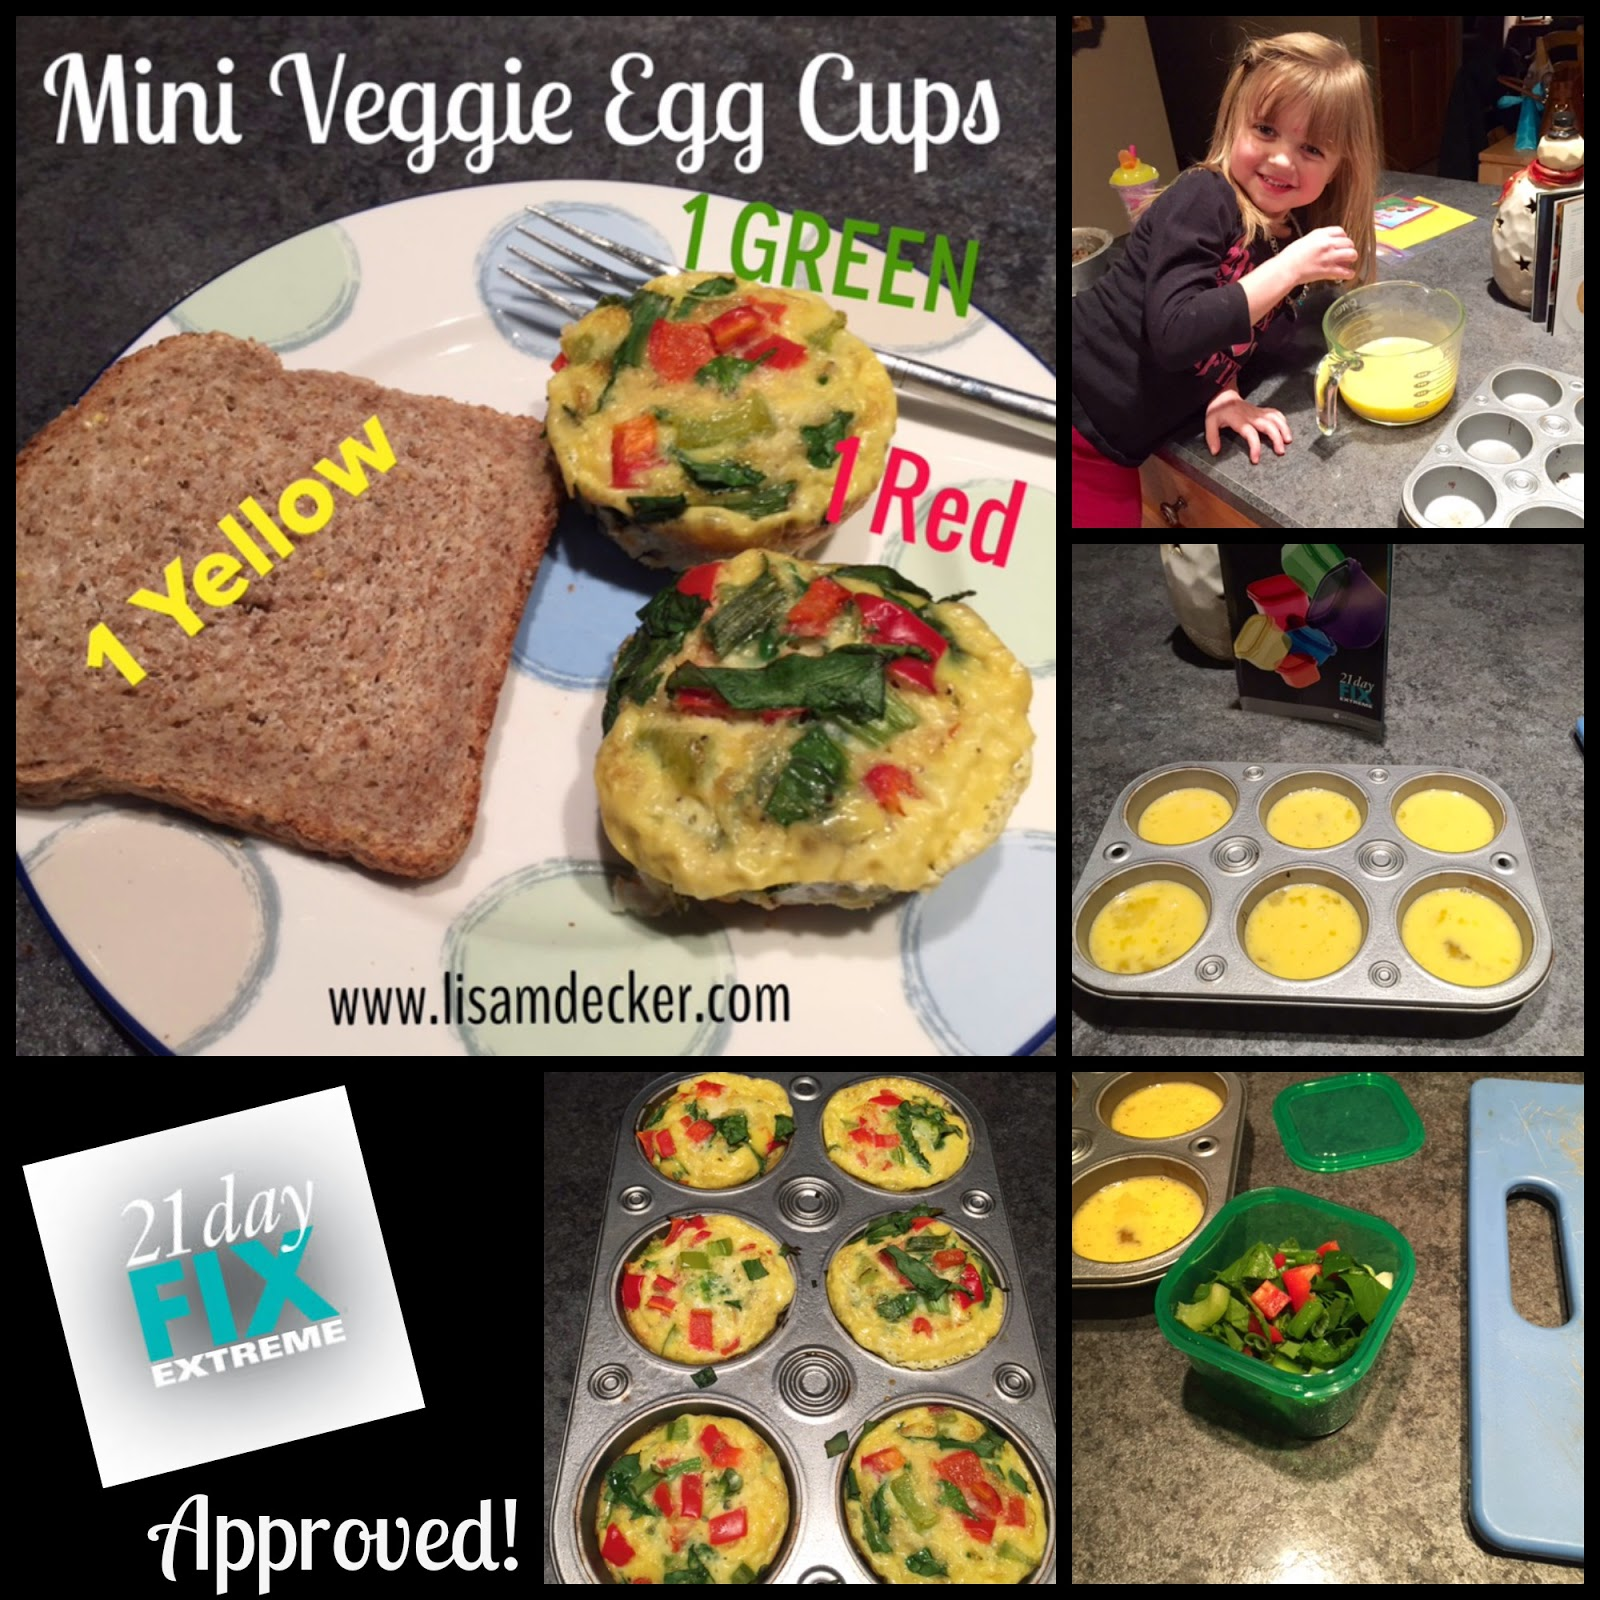 Mini Veggies Egg Cups, Egg White Muffins, Healthy Breakfast, Clean Eating, 21 Day Fix Extreme Recipes, 21 Day Fix Extreme